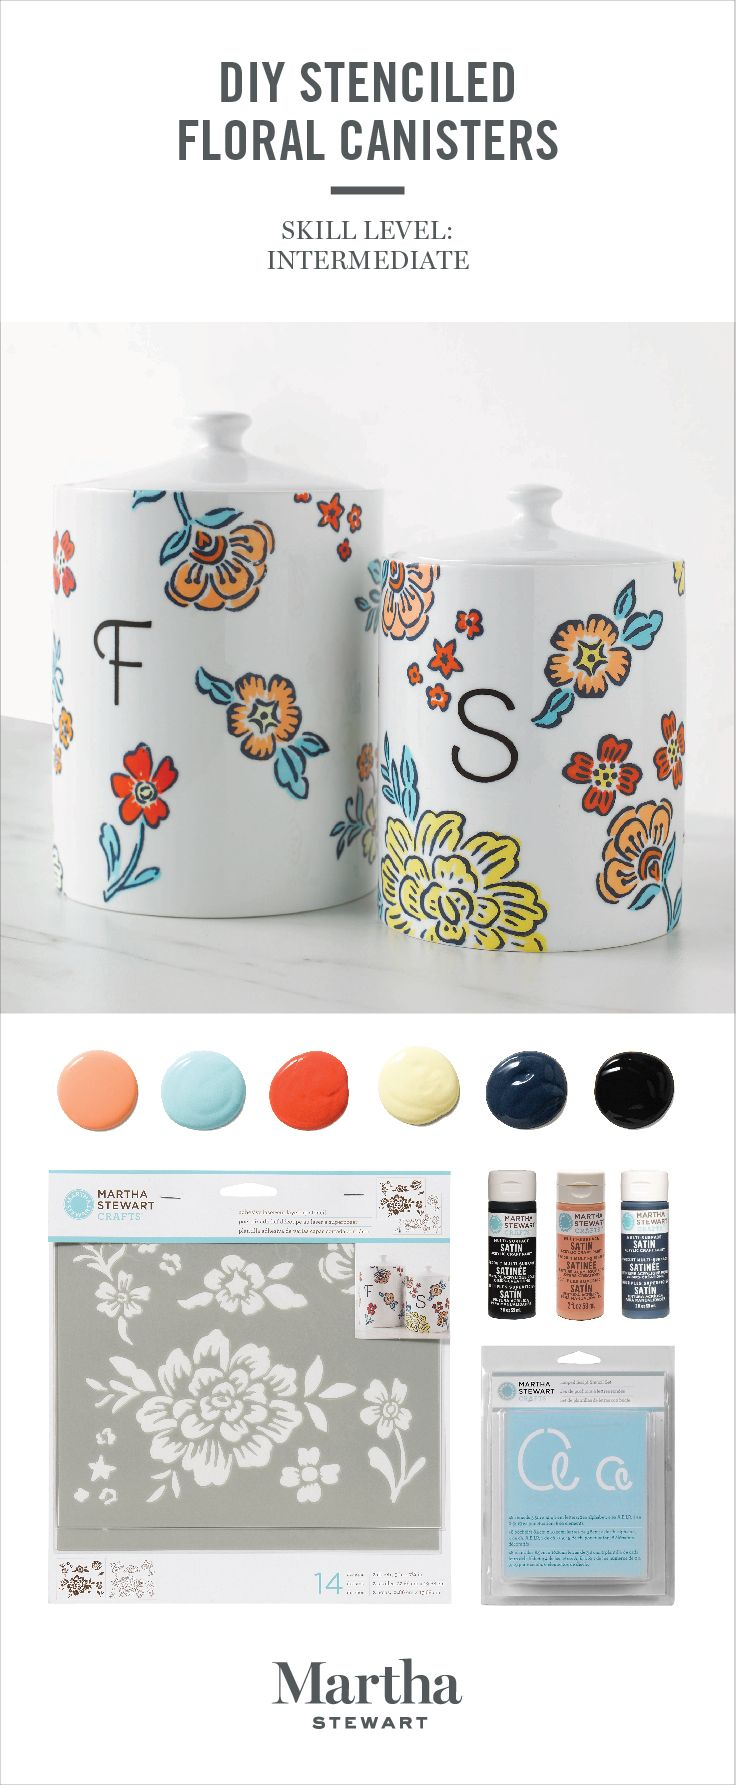 Transform plain storage canisters into customized display pieces with Martha Stewart Multi-Surface Acrylic Craft Paints and Stencil Sets! Shop our expanded assortment of all-new craft paints and tools only at @michaelsstores.